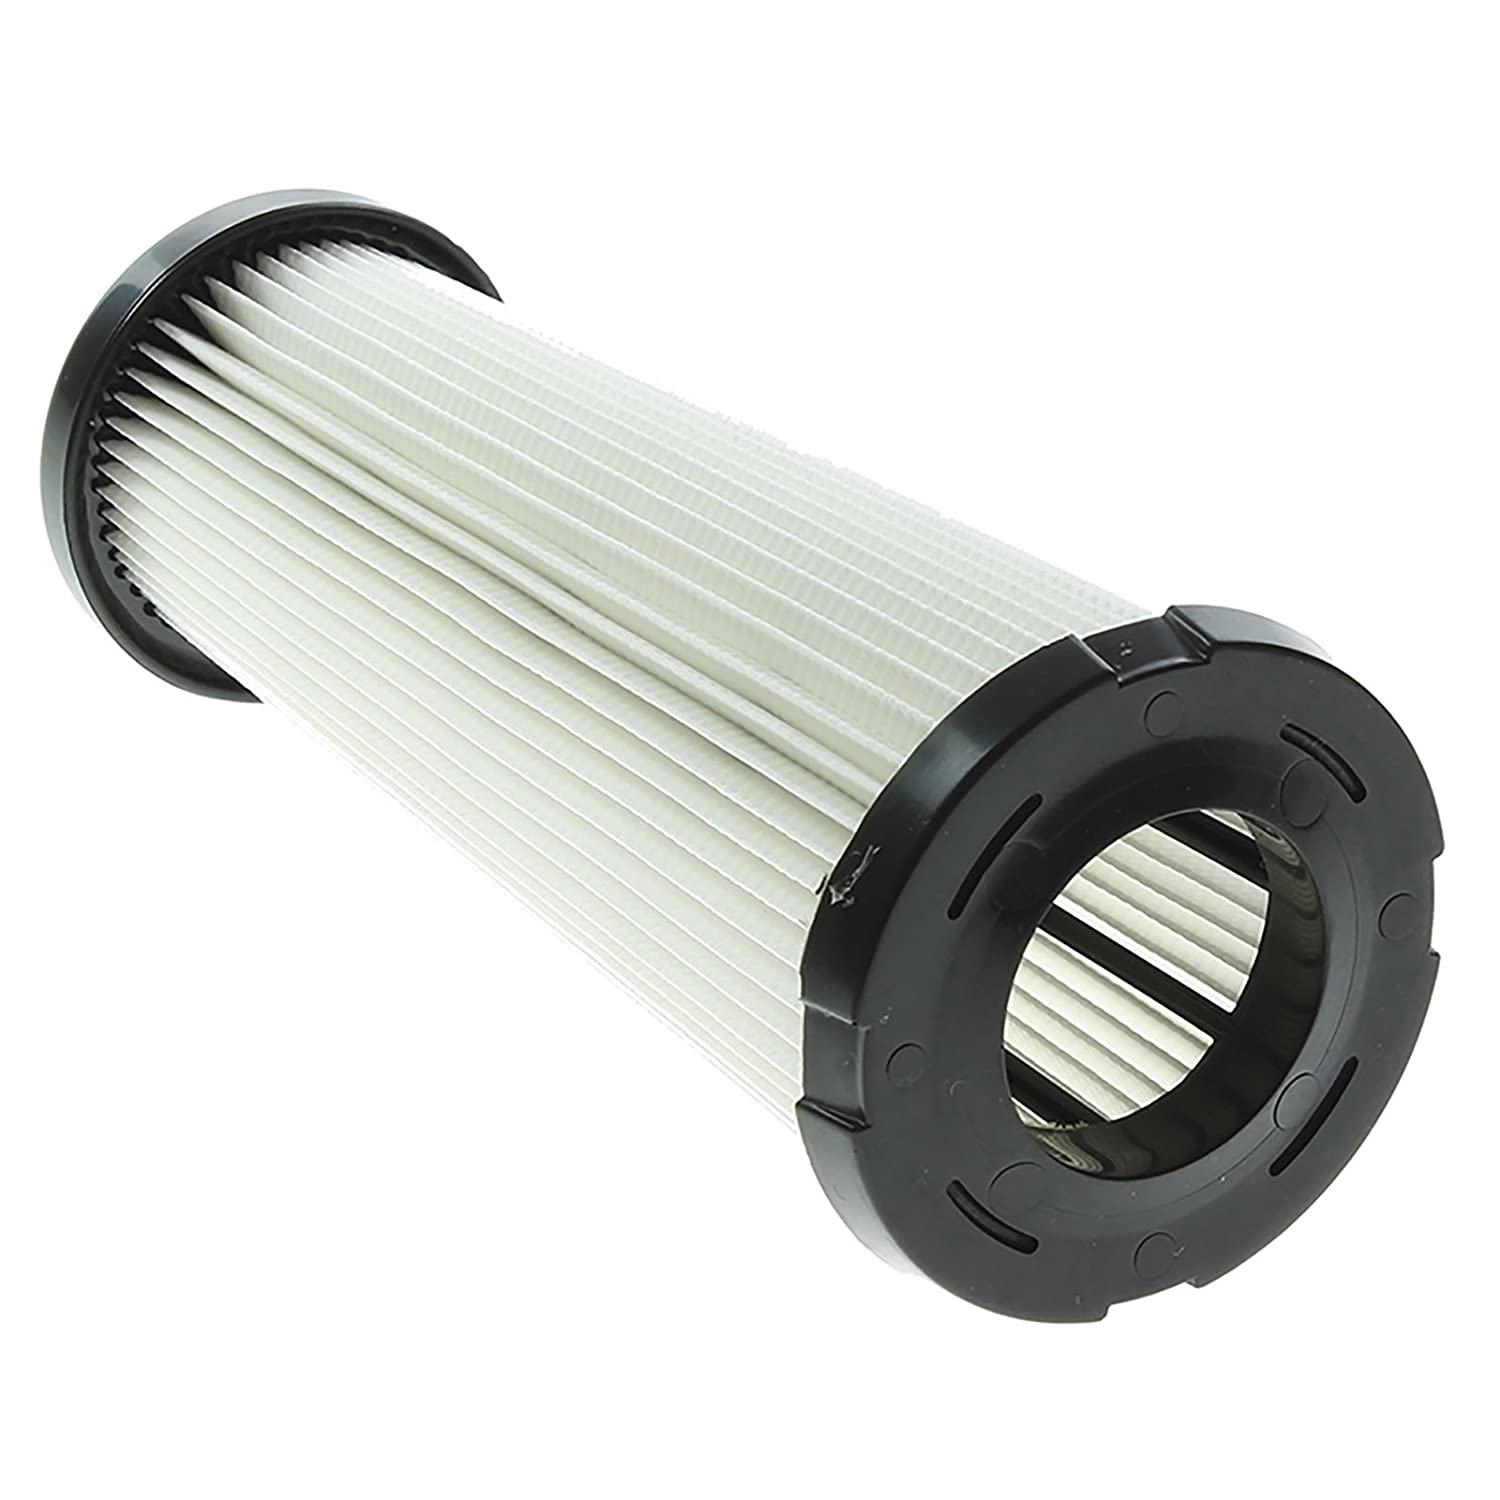 First4Spares Filter for Vax Vacuum Cleaners